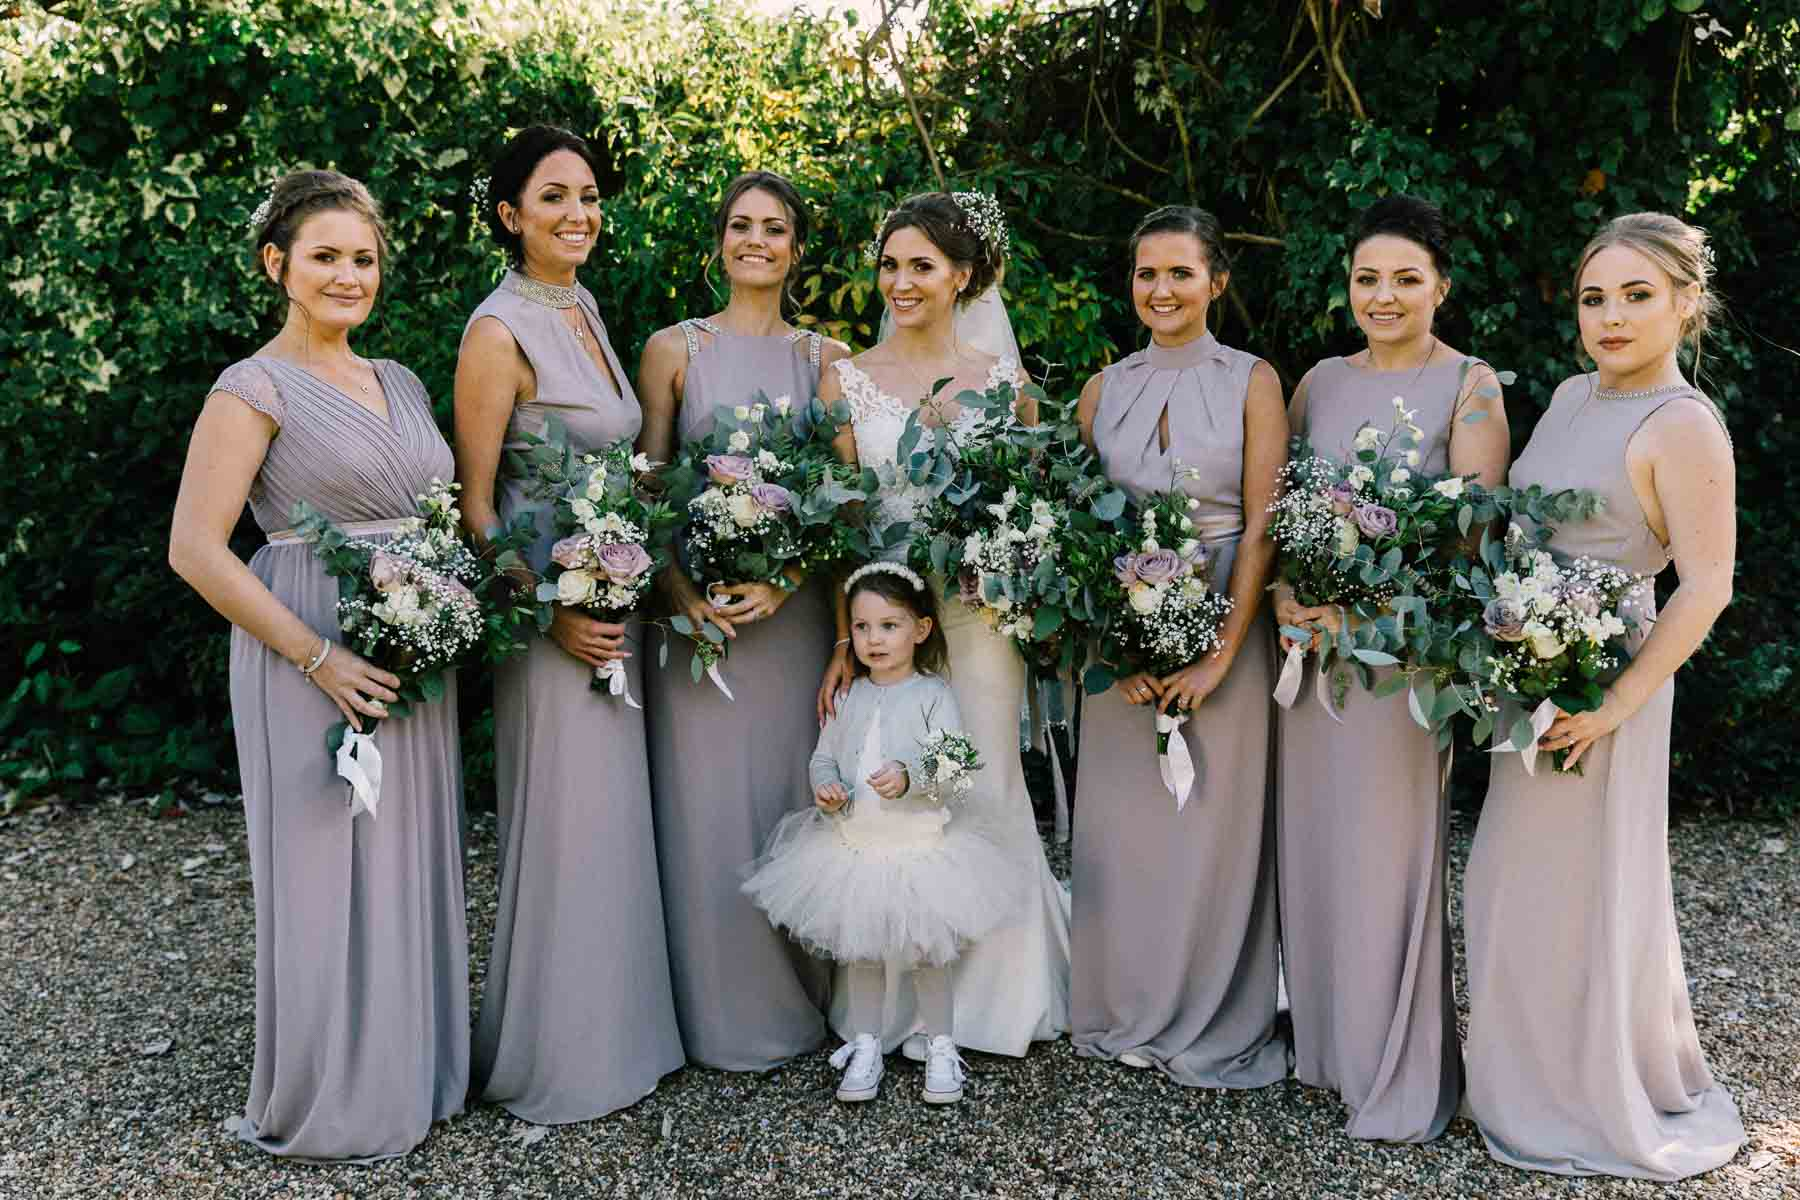 bride squad goals